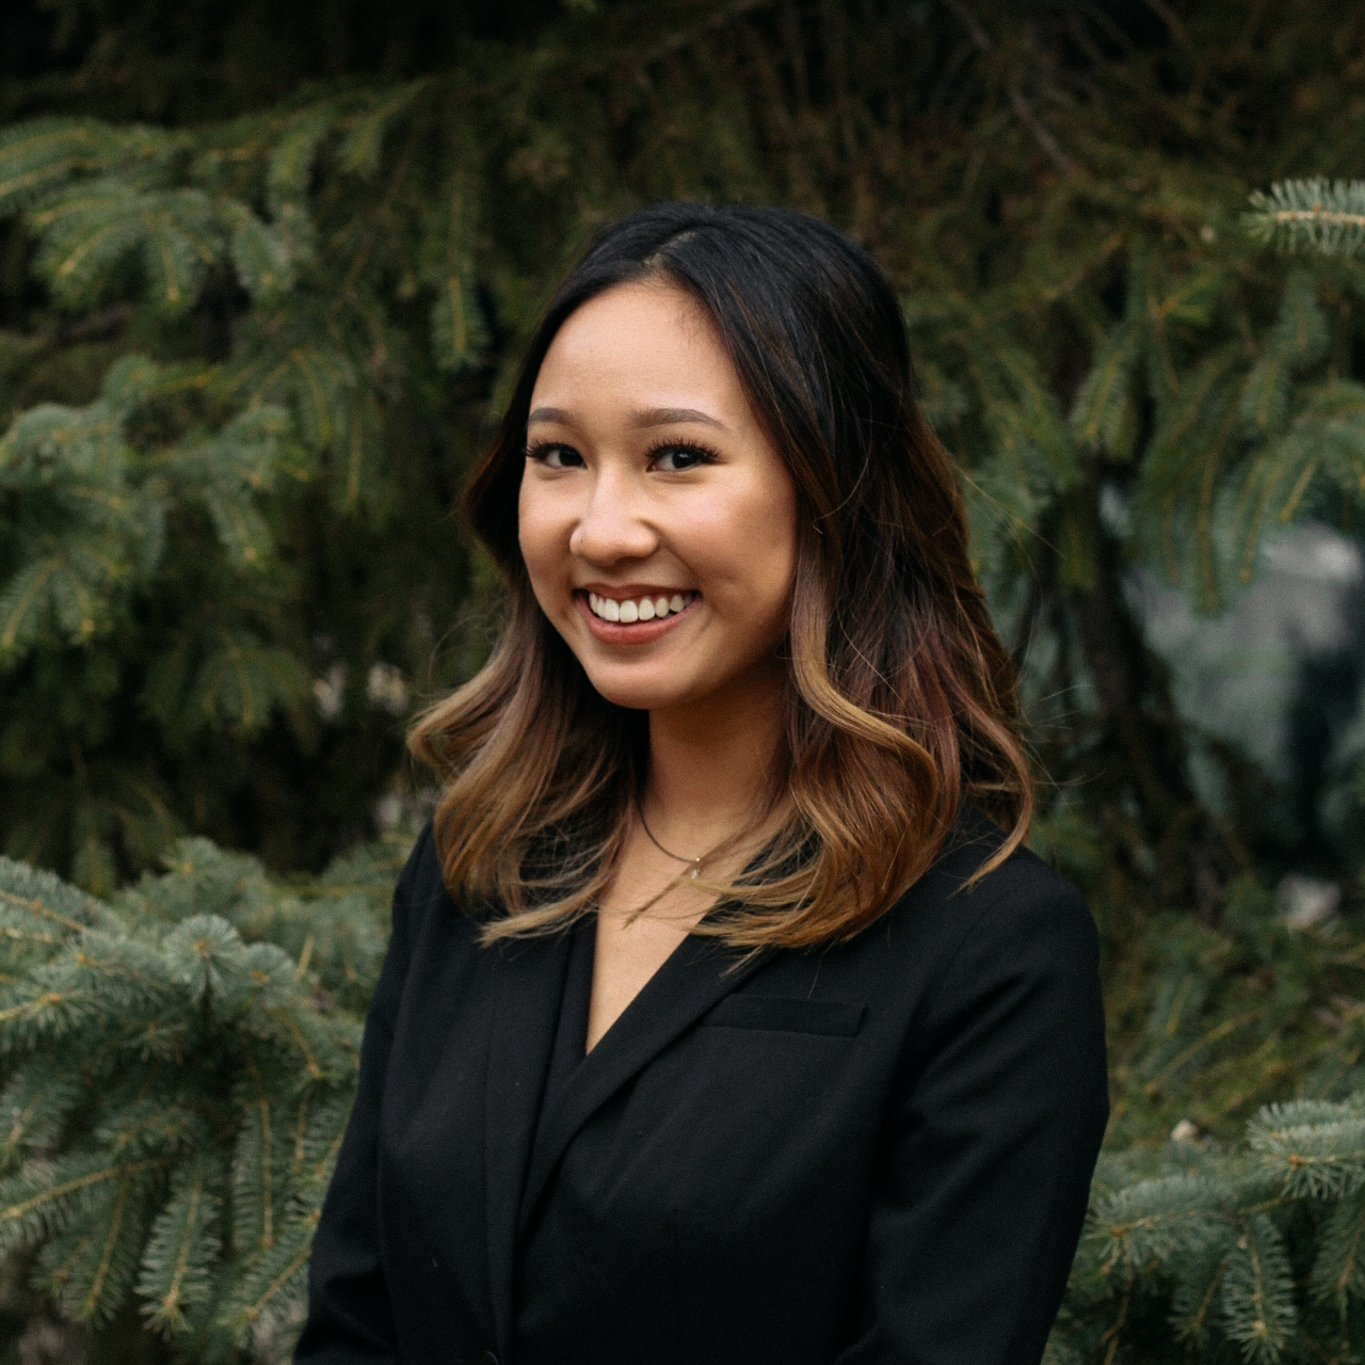 Director of Events:Ivy Diep - Ivy is currently studying at the Alberta School of Business, majoring in Business Economics & Business Law while minoring in Marketing. If you know Ivy, you know that she's constantly eating. For those of you who don't know her, you'll figure that out sooner or later. As of now, Ivy plans to attain her MBA after graduation. From there, she plans to pursue a career in entrepreneurship surrounding the continually dynamic international market.